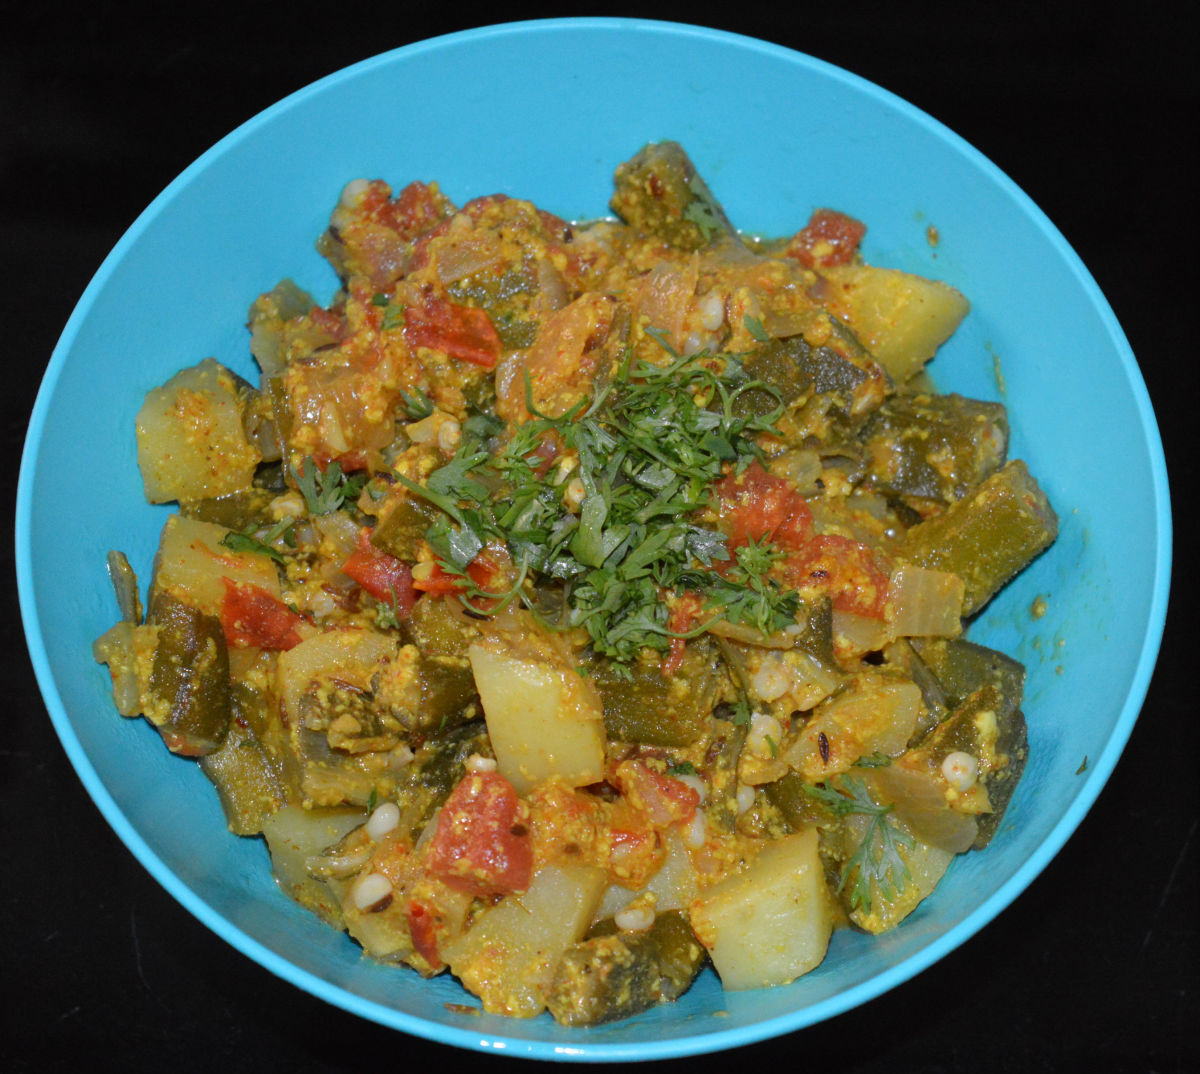 The okra potato curry in a serving bowl.